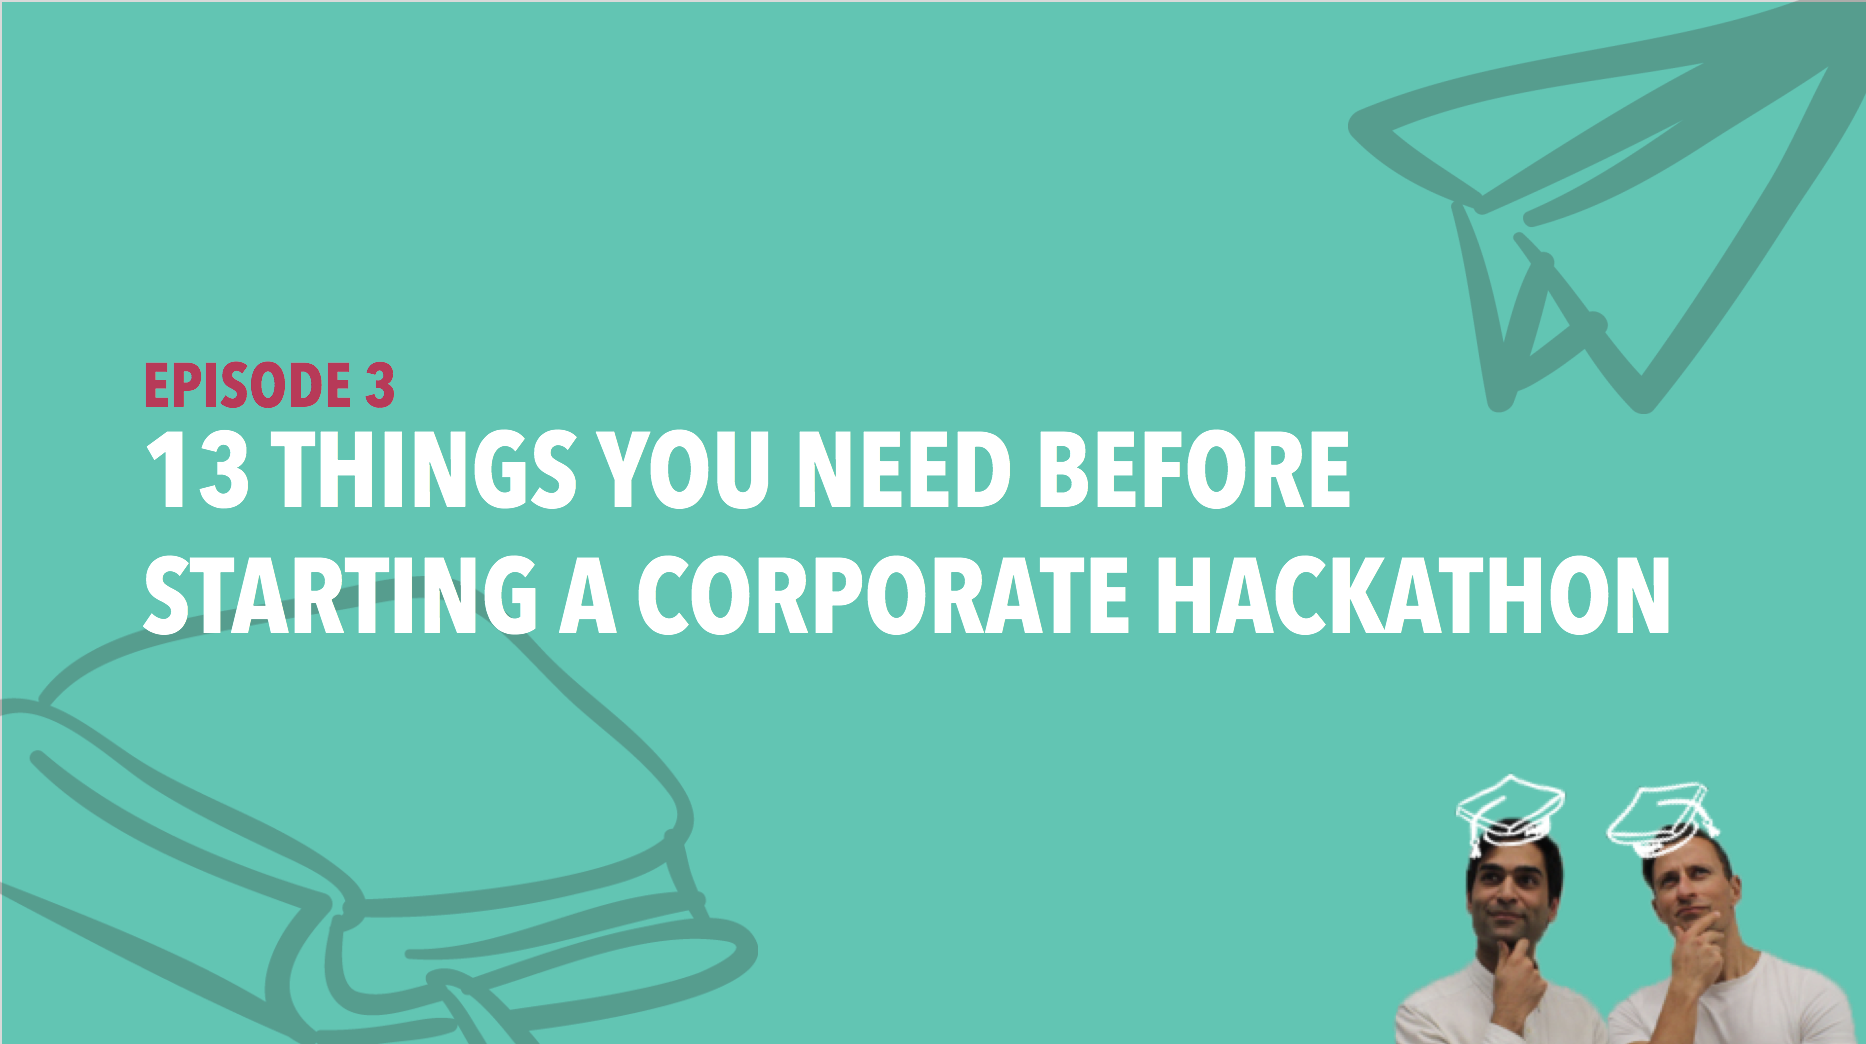 CiSchool Episode #003: 13 things you need before starting a corporate hackathon